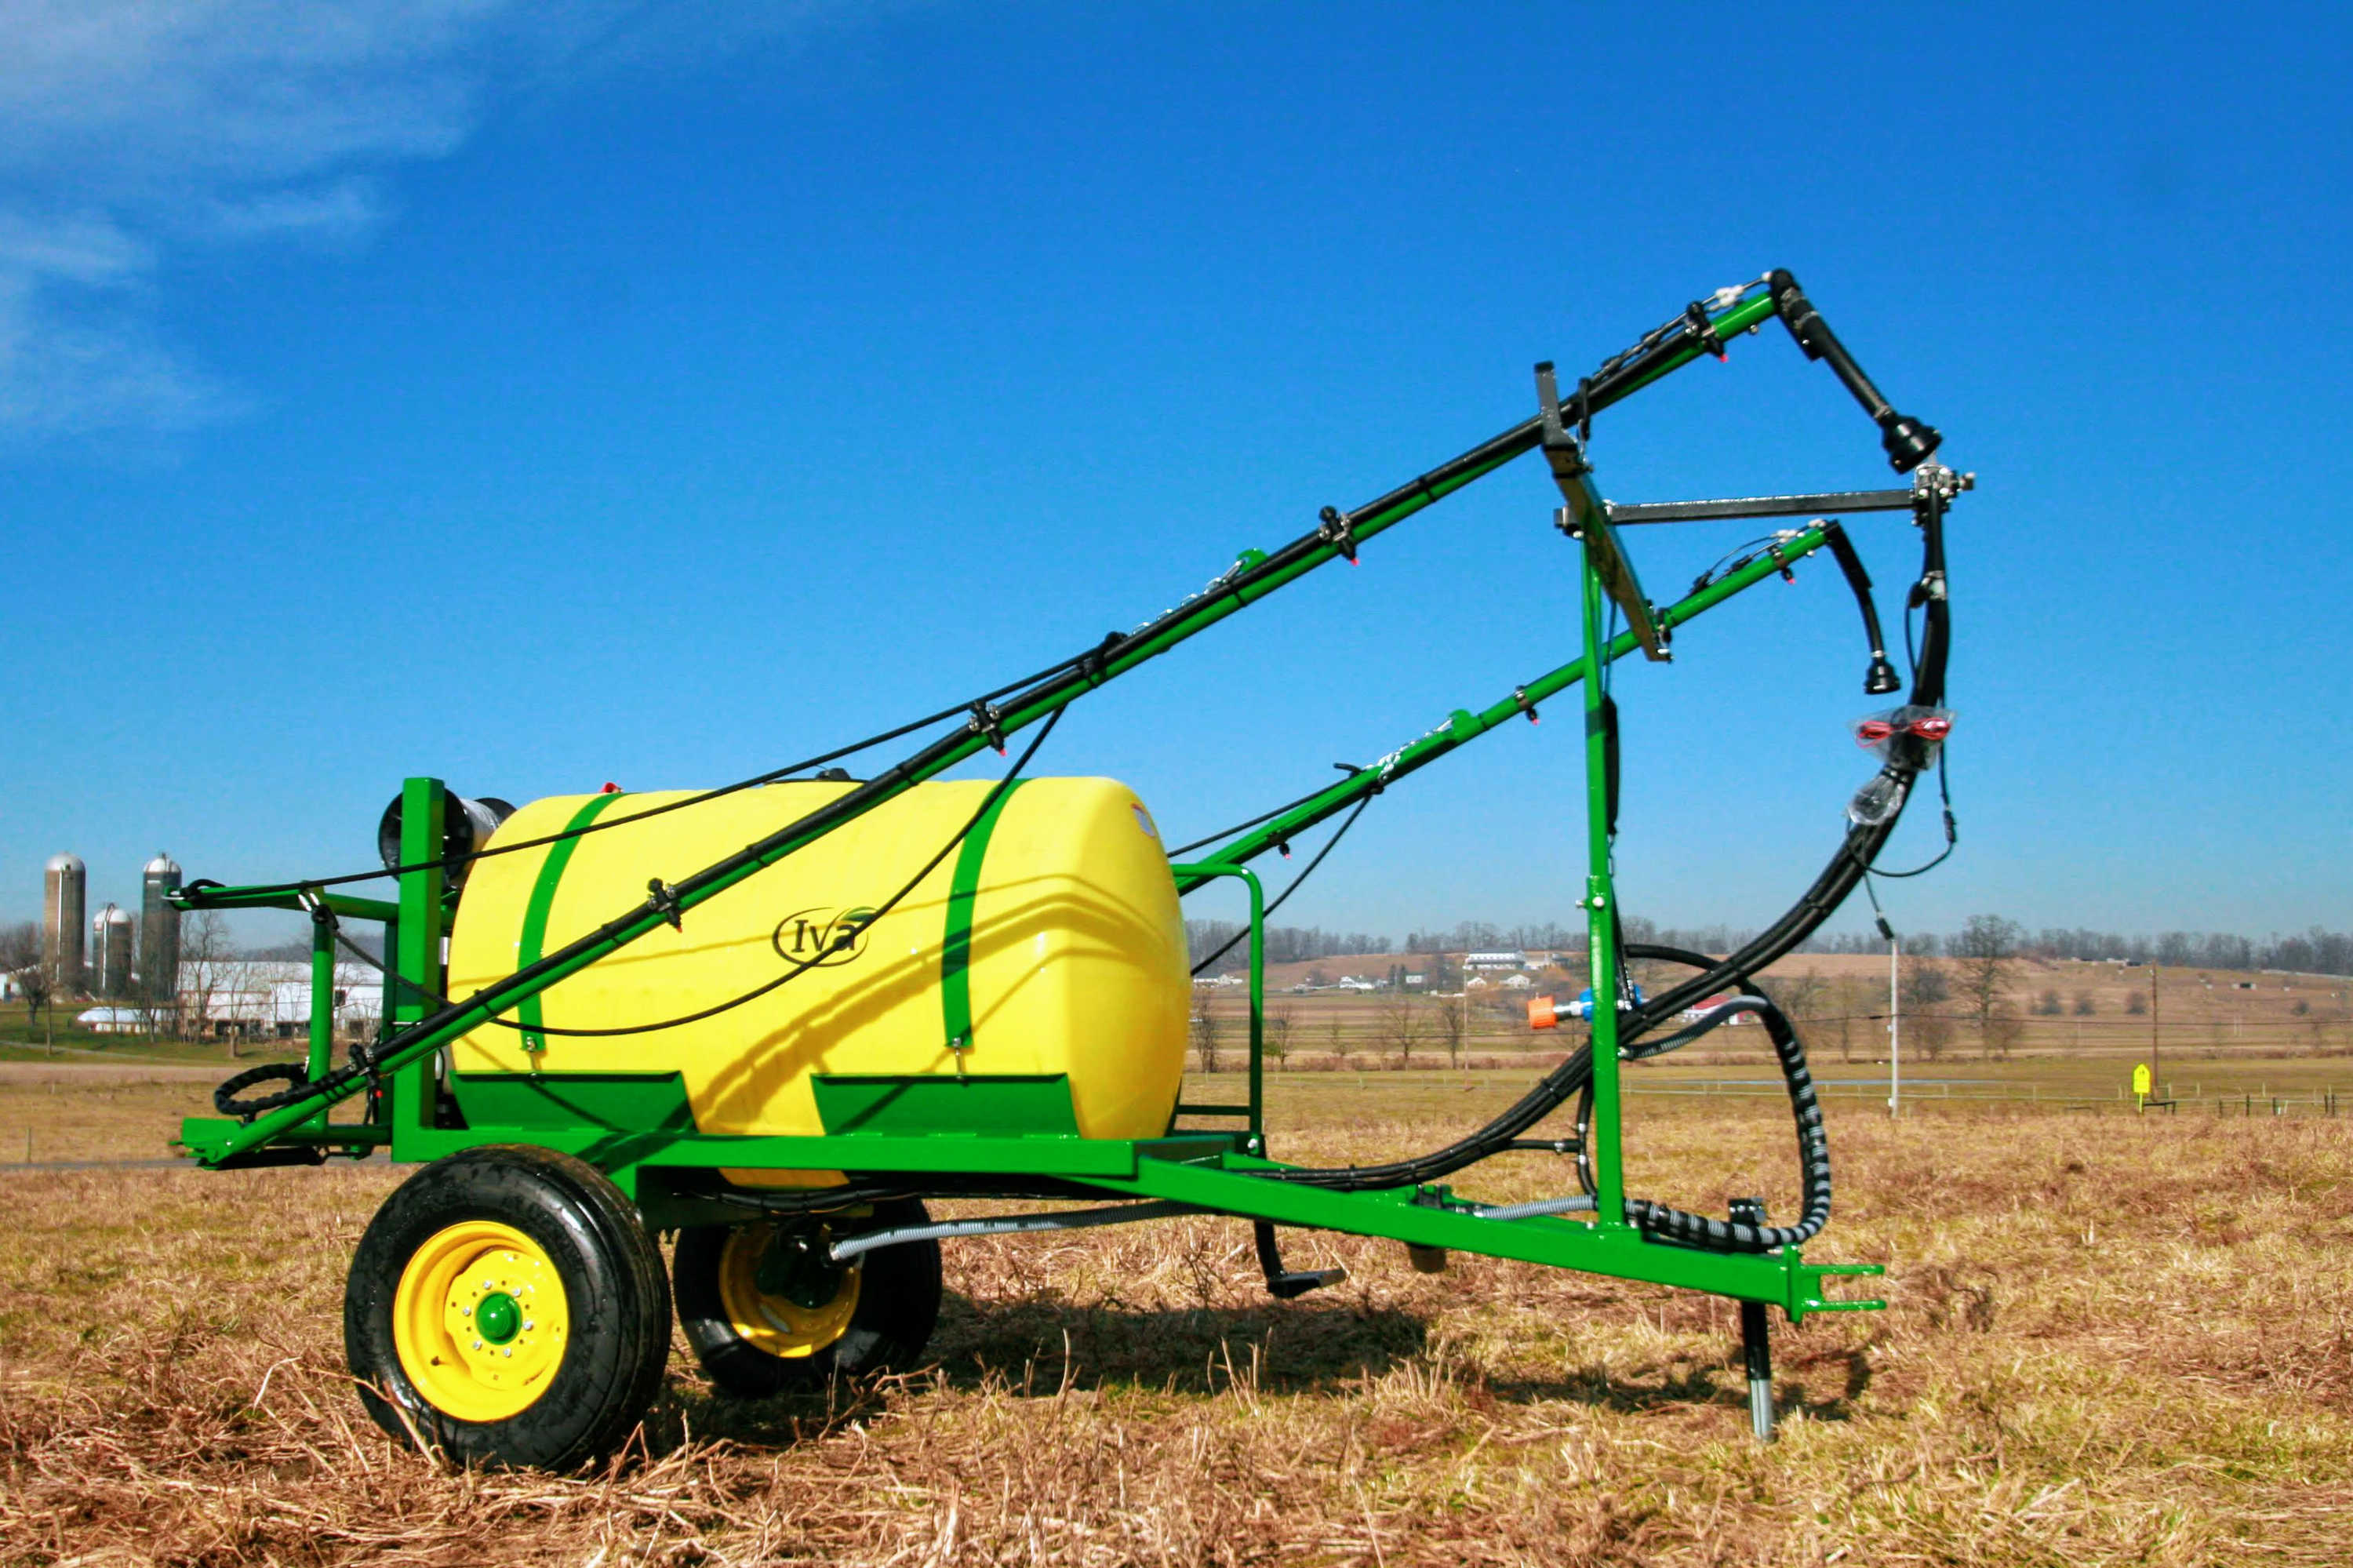 300 gallon Trailer Field Sprayer with 30' booms